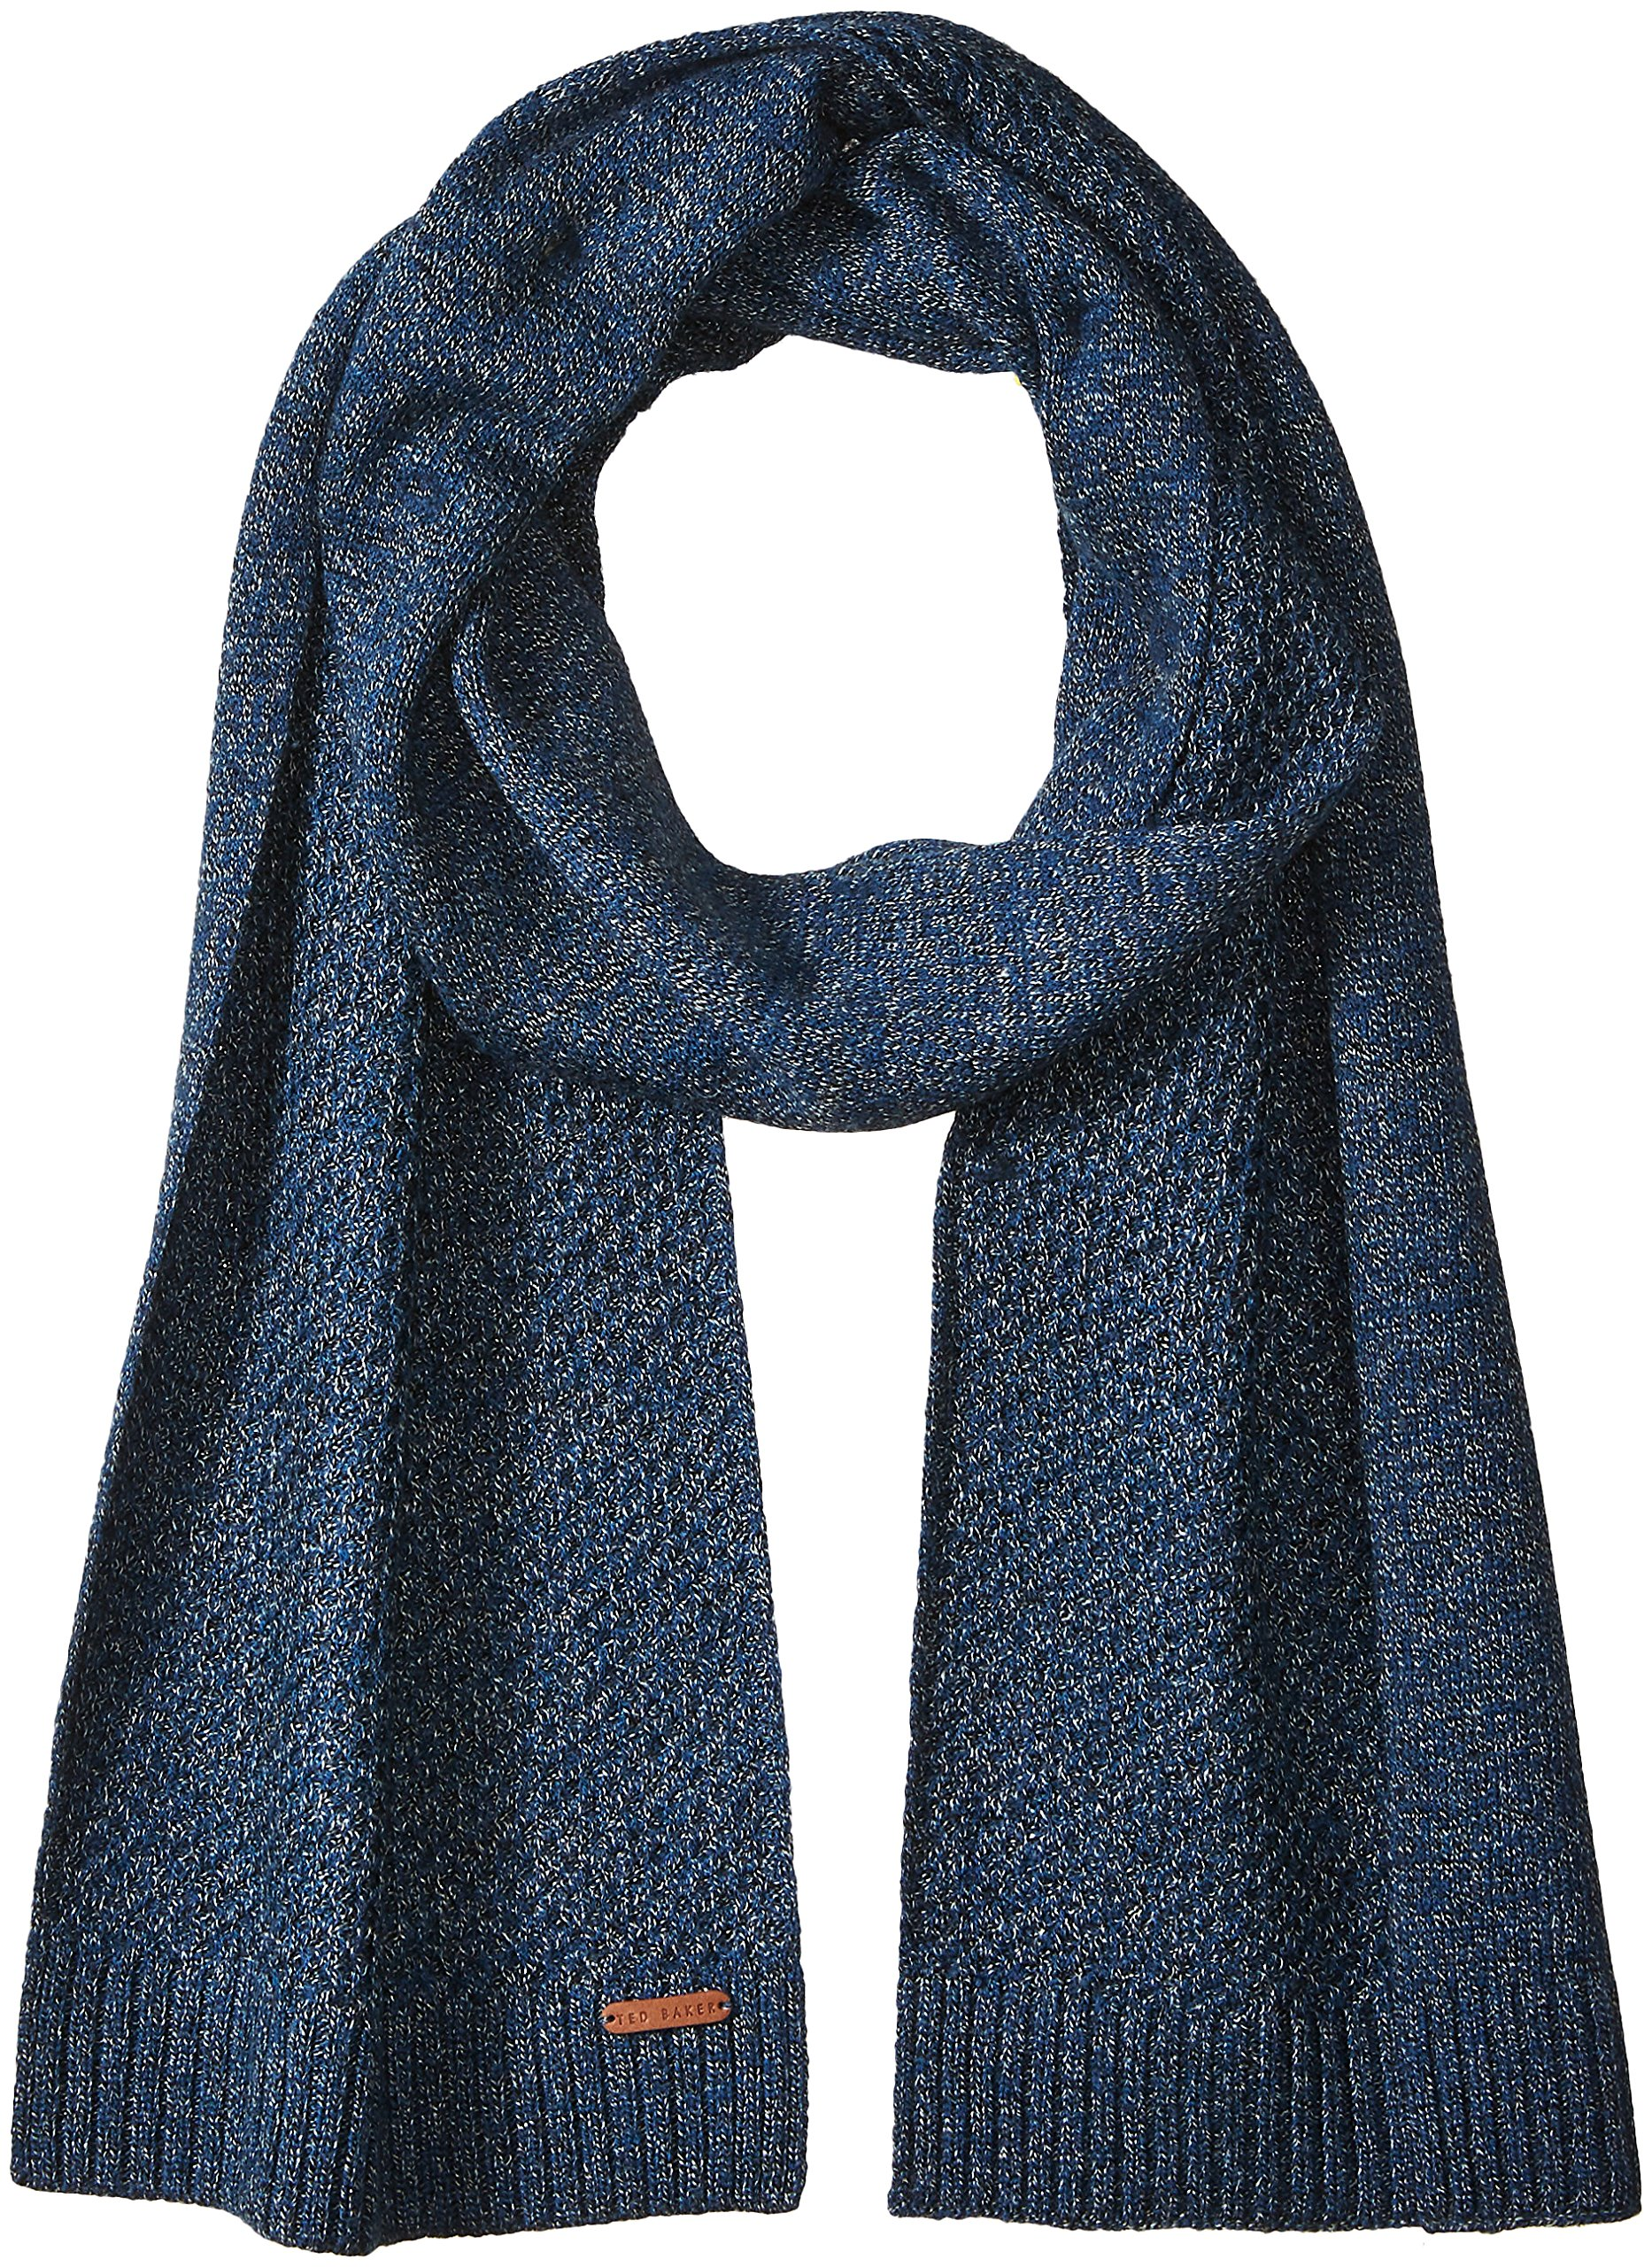 Ted Baker Men's Kapok Twisted Cable Knitted Scarf, Teal/Blue, One Size